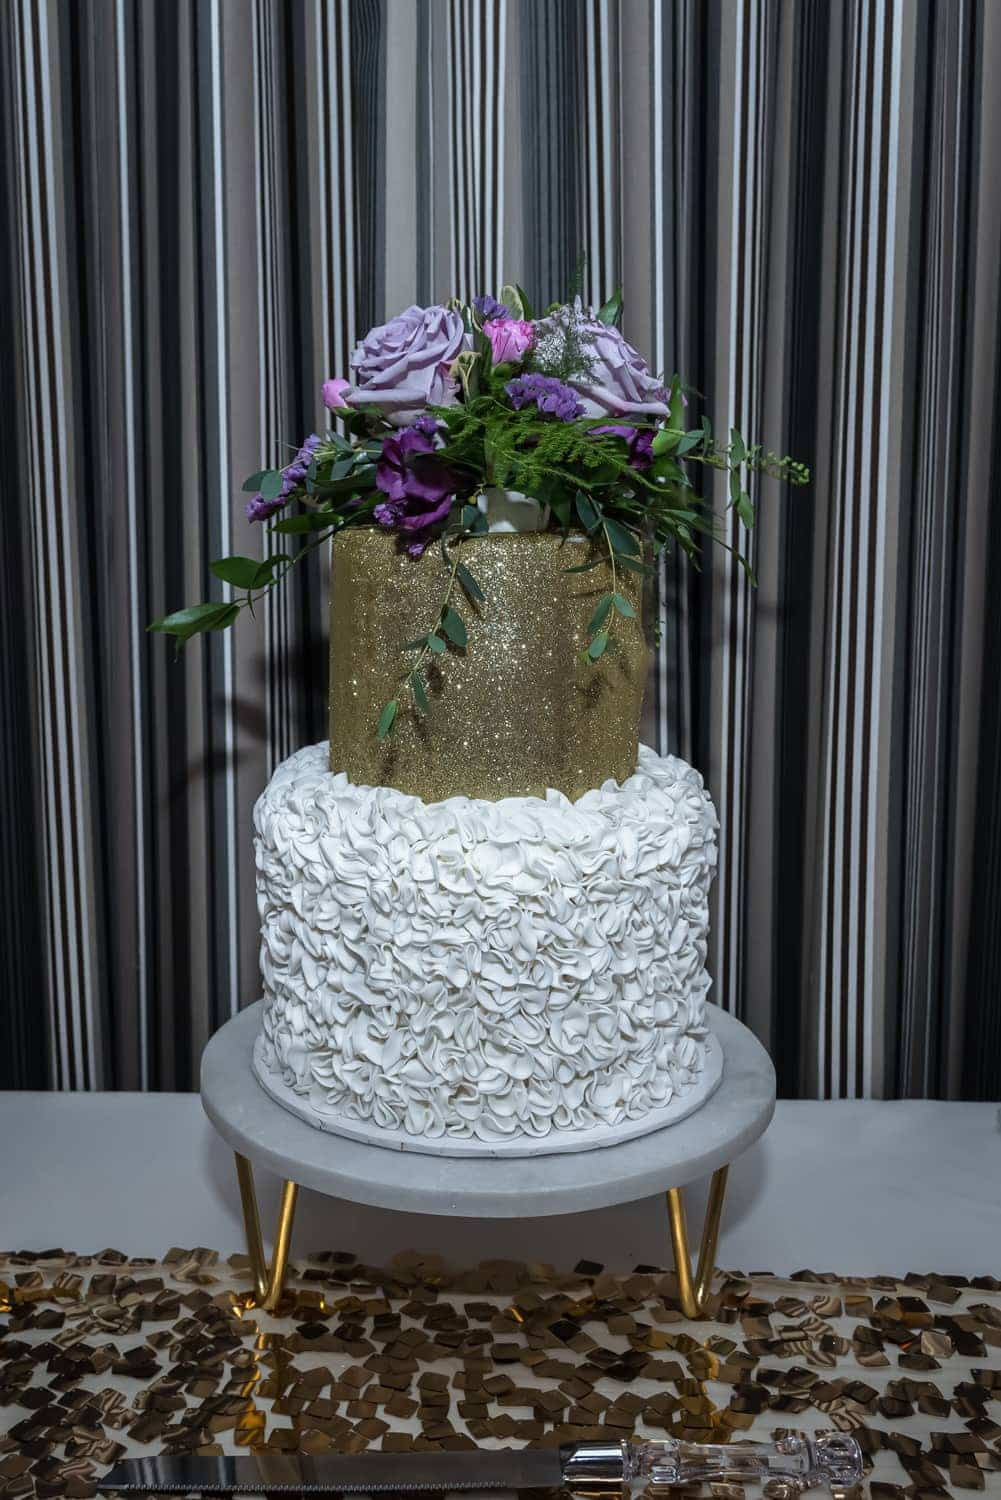 A gold fondant 2 tier wedding cake with floral wedding cake toppers at a White Point Beach Resort wedding.